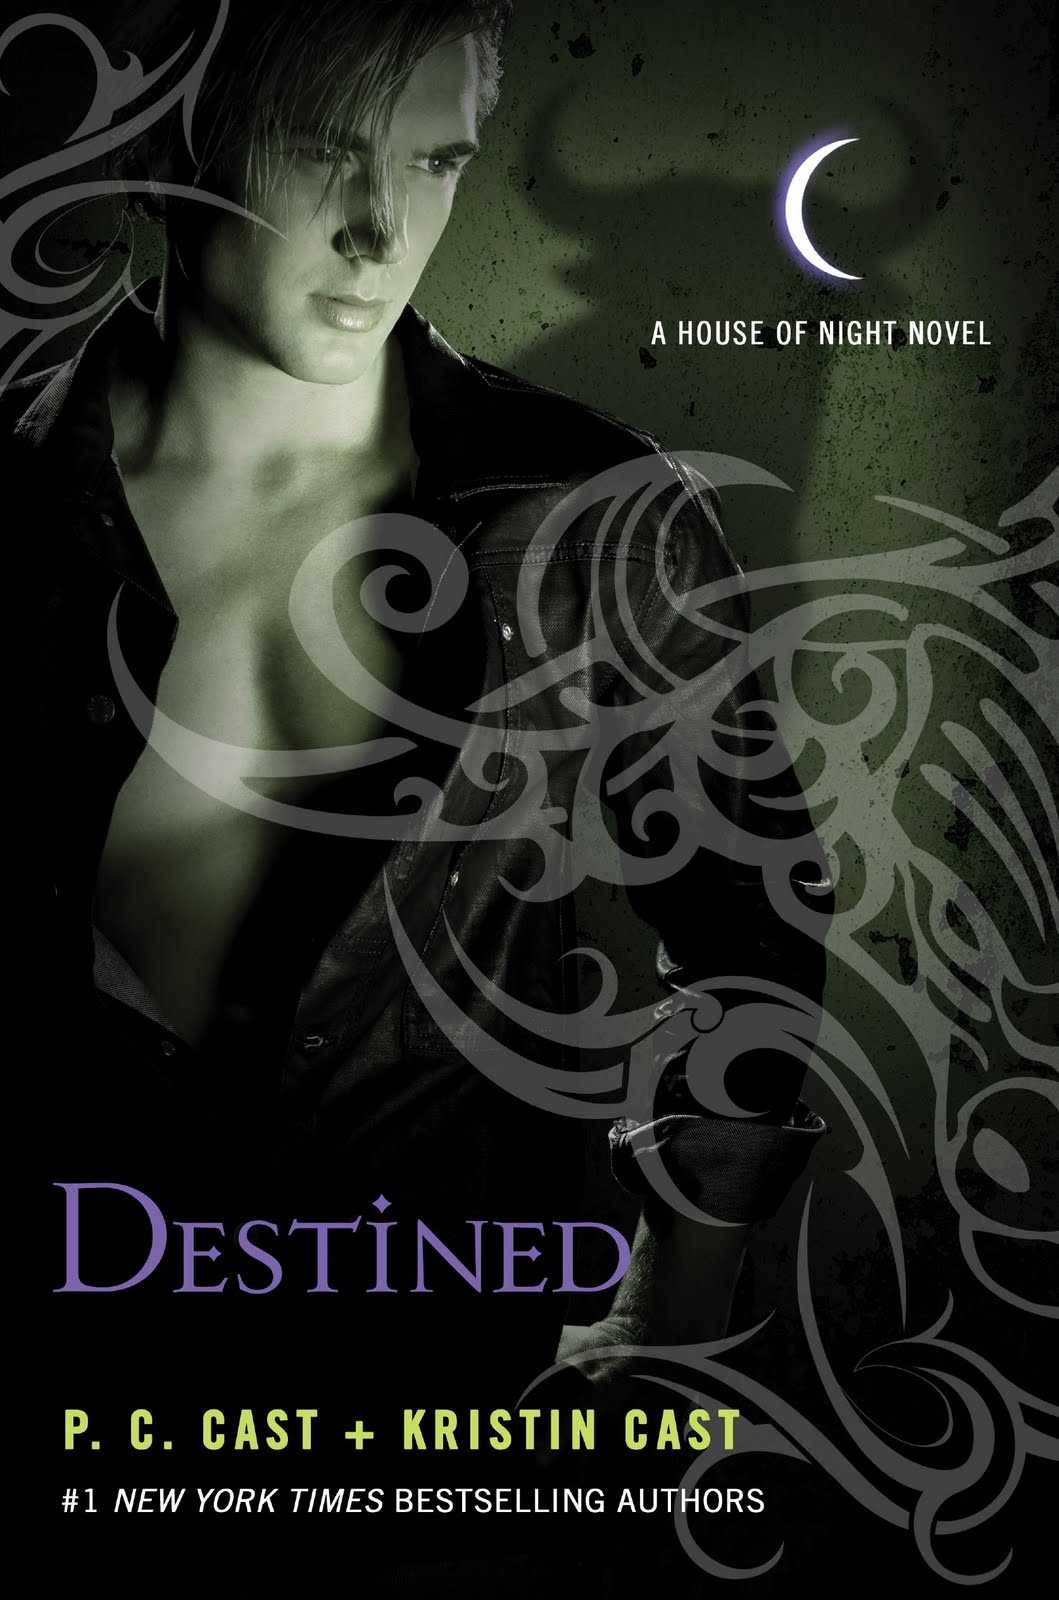 The teen bookworm destined house of night 9 review for Housse of night